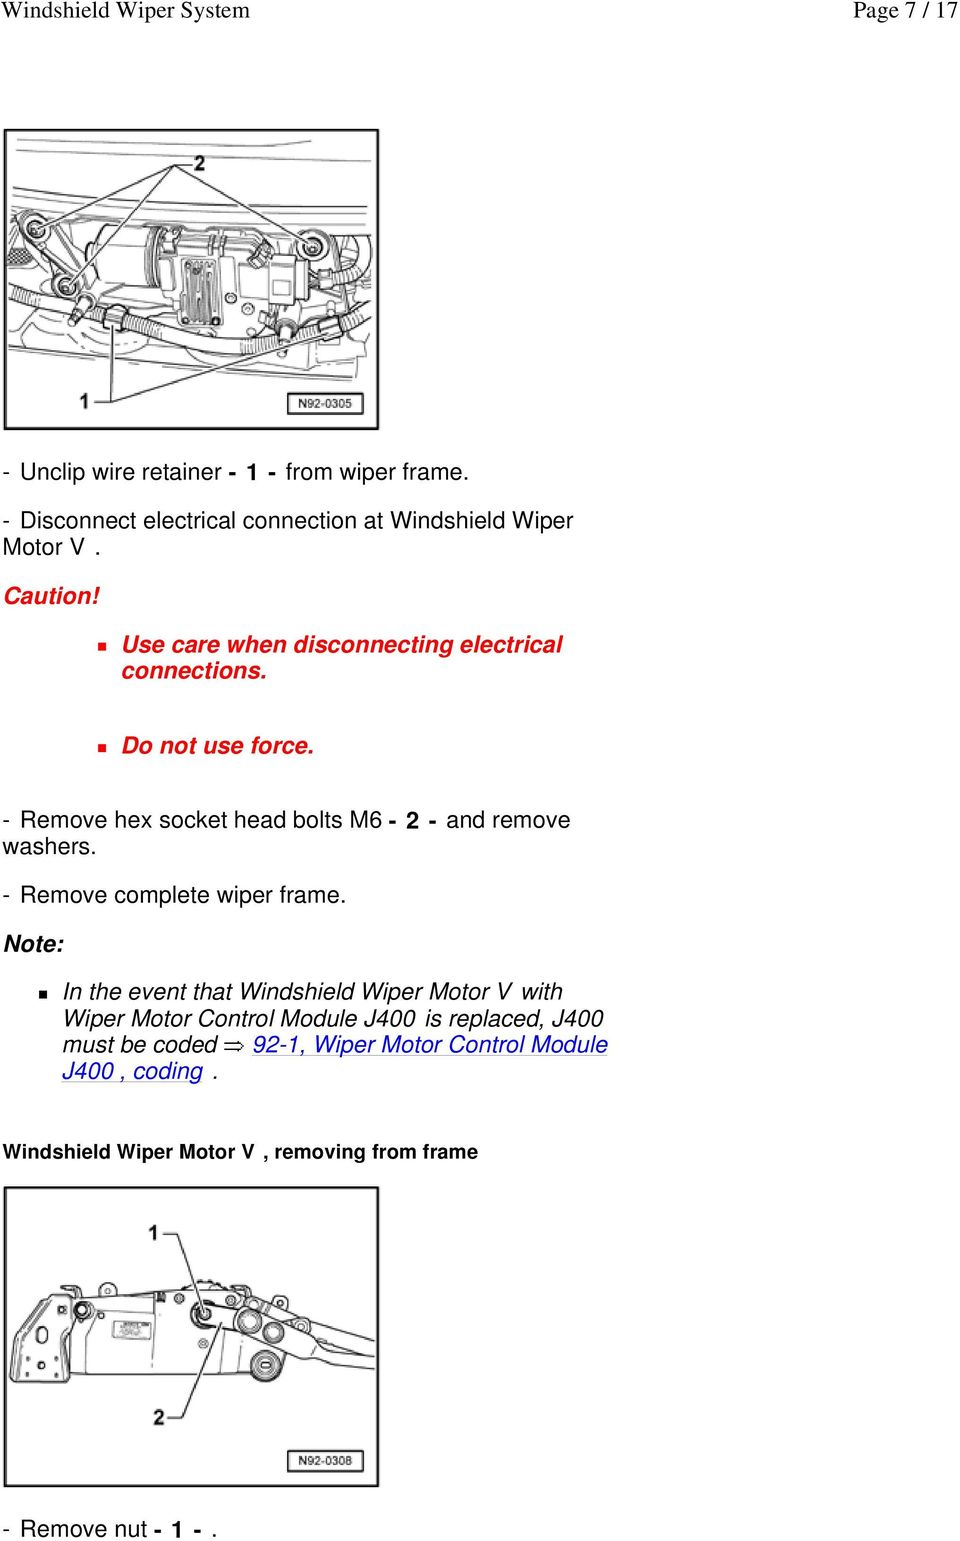 Wiper Motor Diagram 2006 Scion - Wiring Diagram